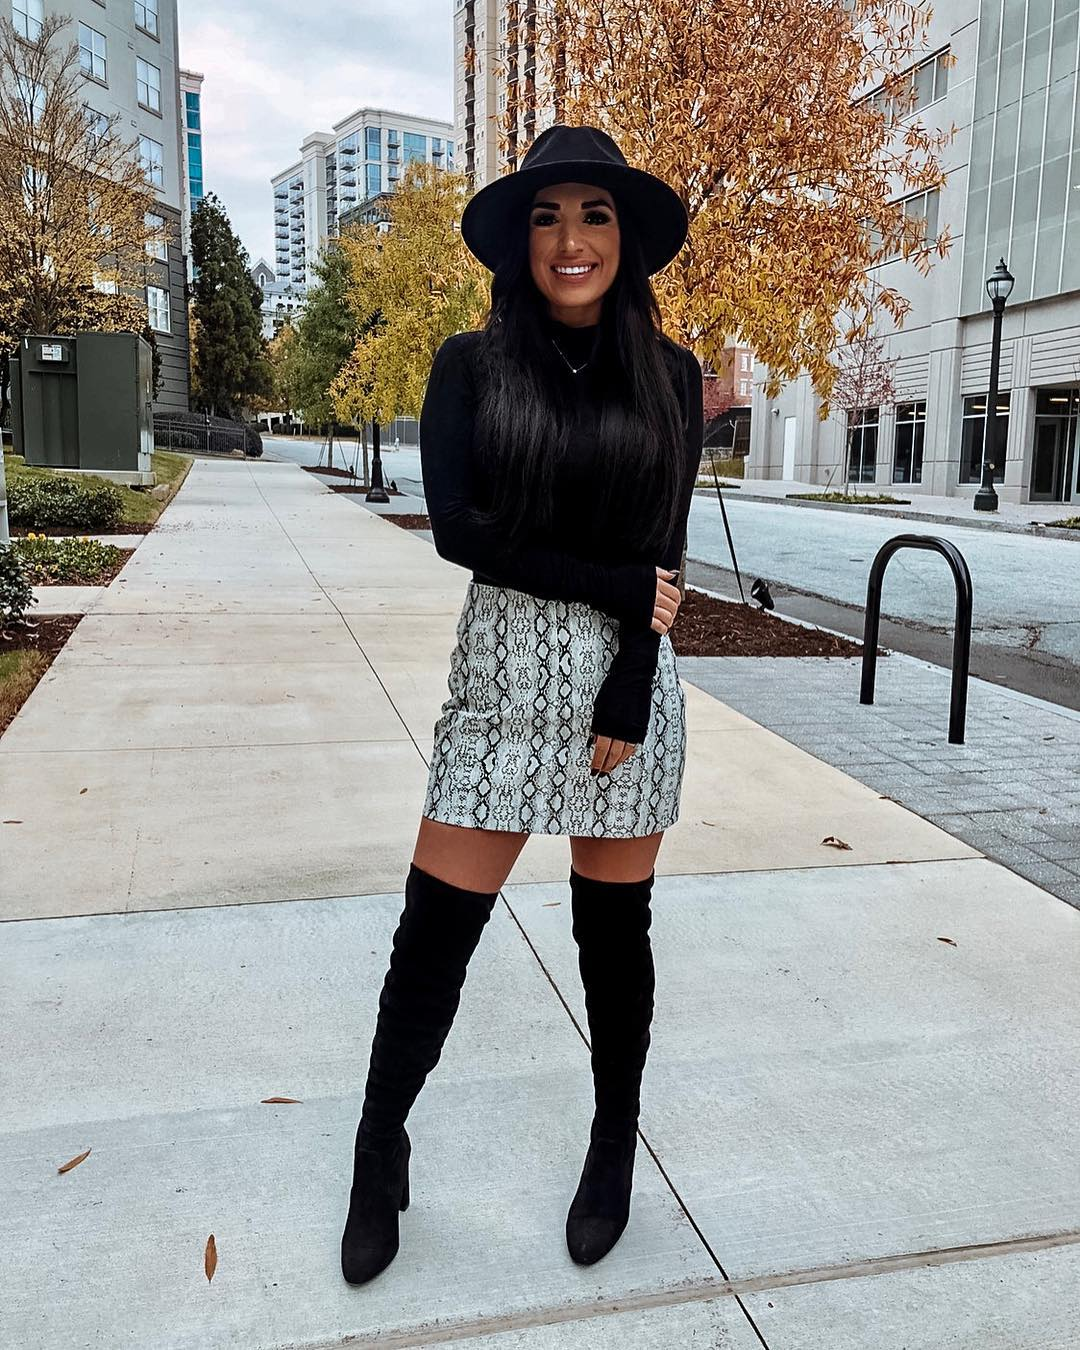 Business Success Interview: With Digital Influencer Nadia Bradley